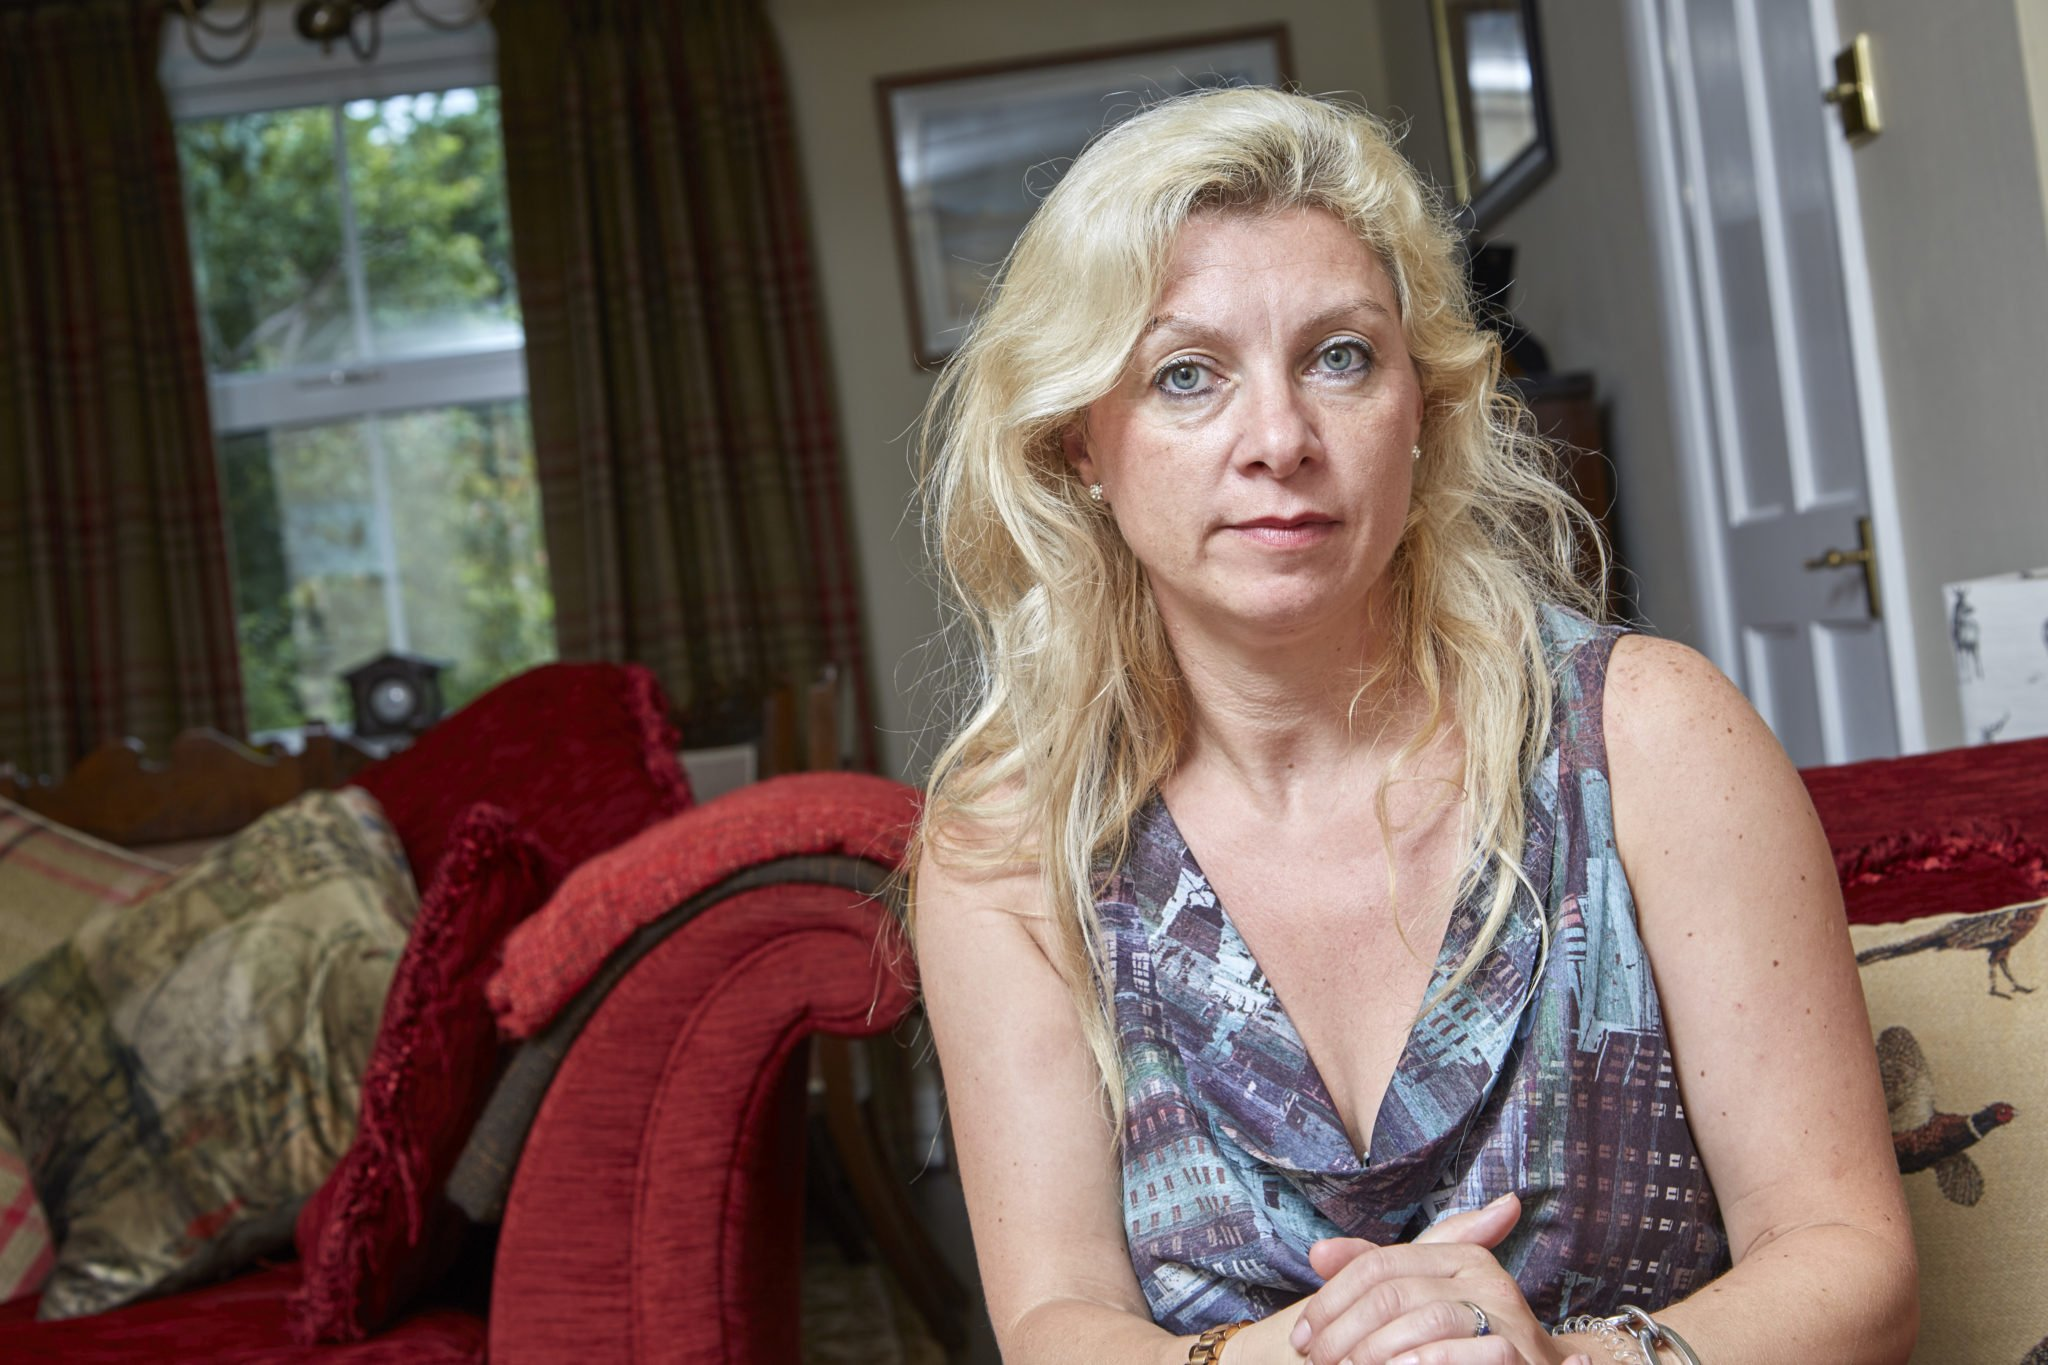 Mum researched her own cancer treatment and discovered doctors were wrongly subjecting her to chemotherapy sessions